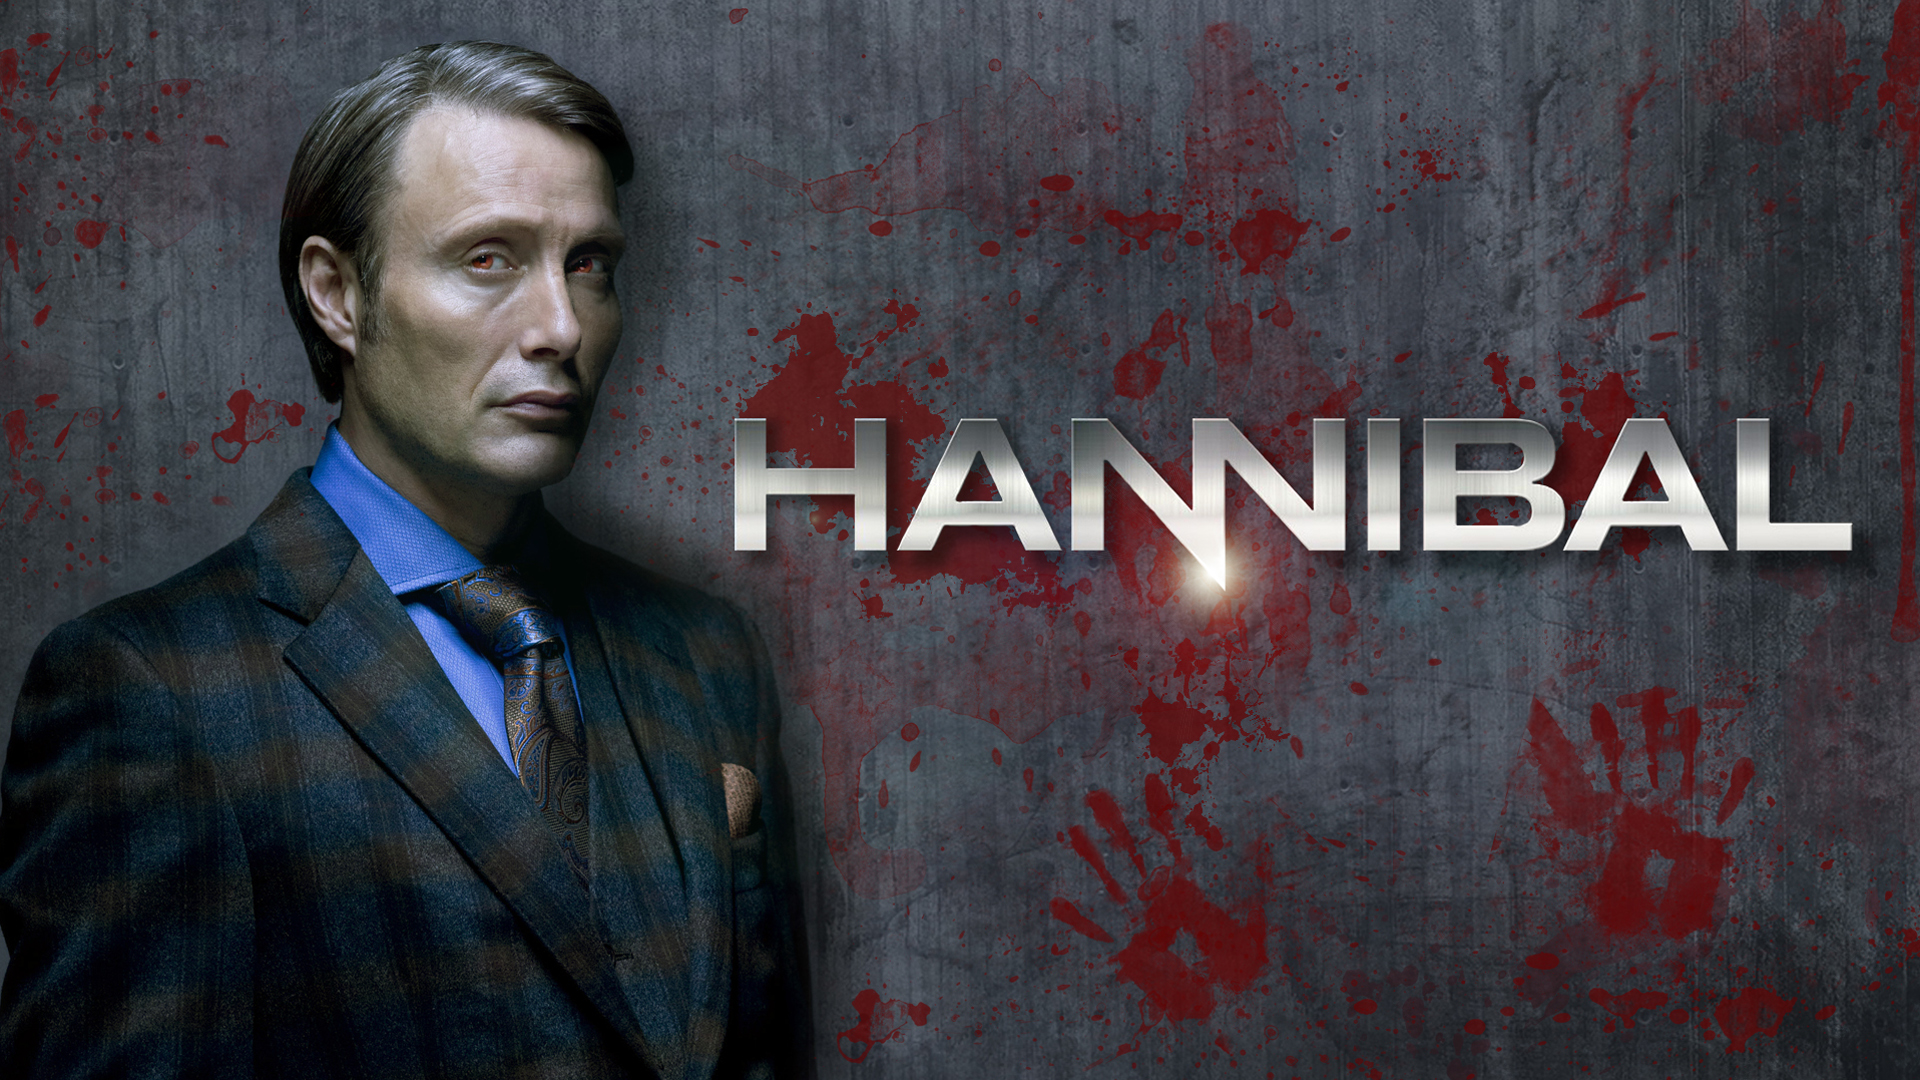 hannibal lecter quotes